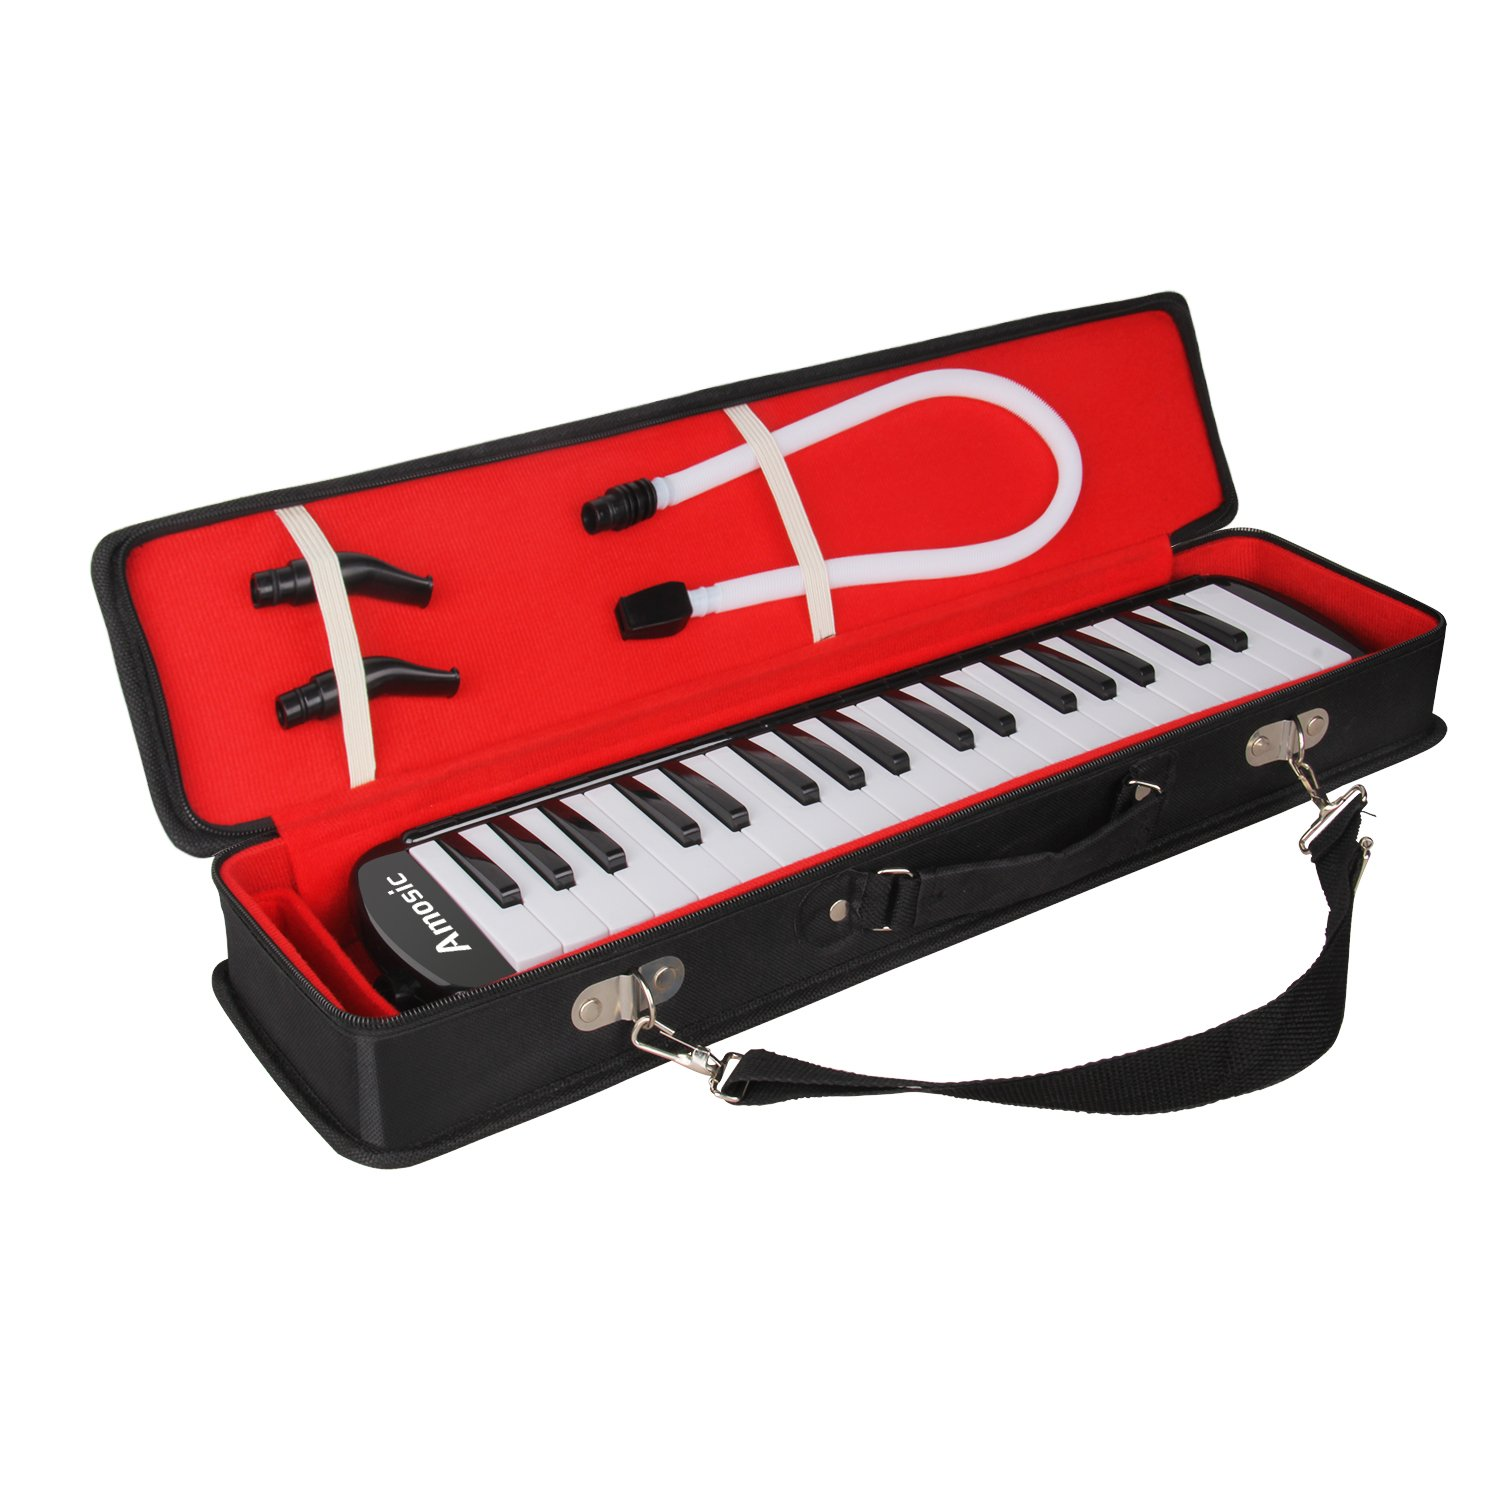 Amosic Melodica 37 Keys Piano Style Keyboard Standard Tone Suitable for Teaching and Playing with a Carry Bag, Kids Music Gift